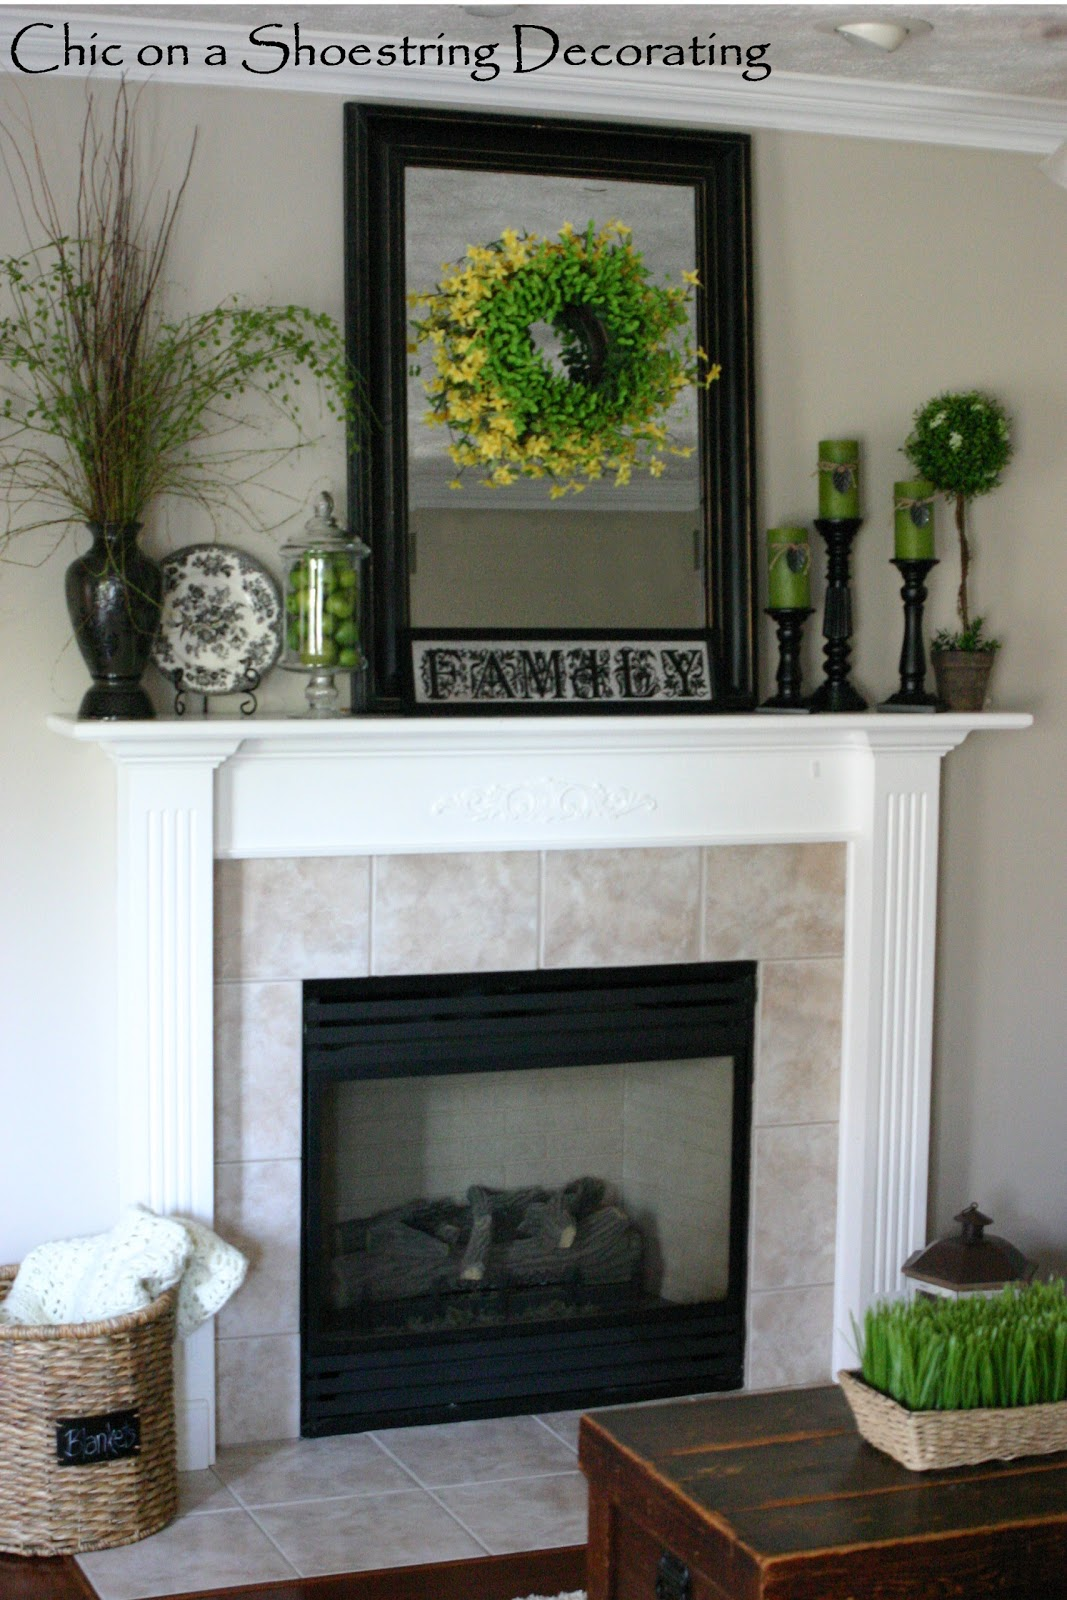 Chic on a Shoestring Decorating Some Summer Decor